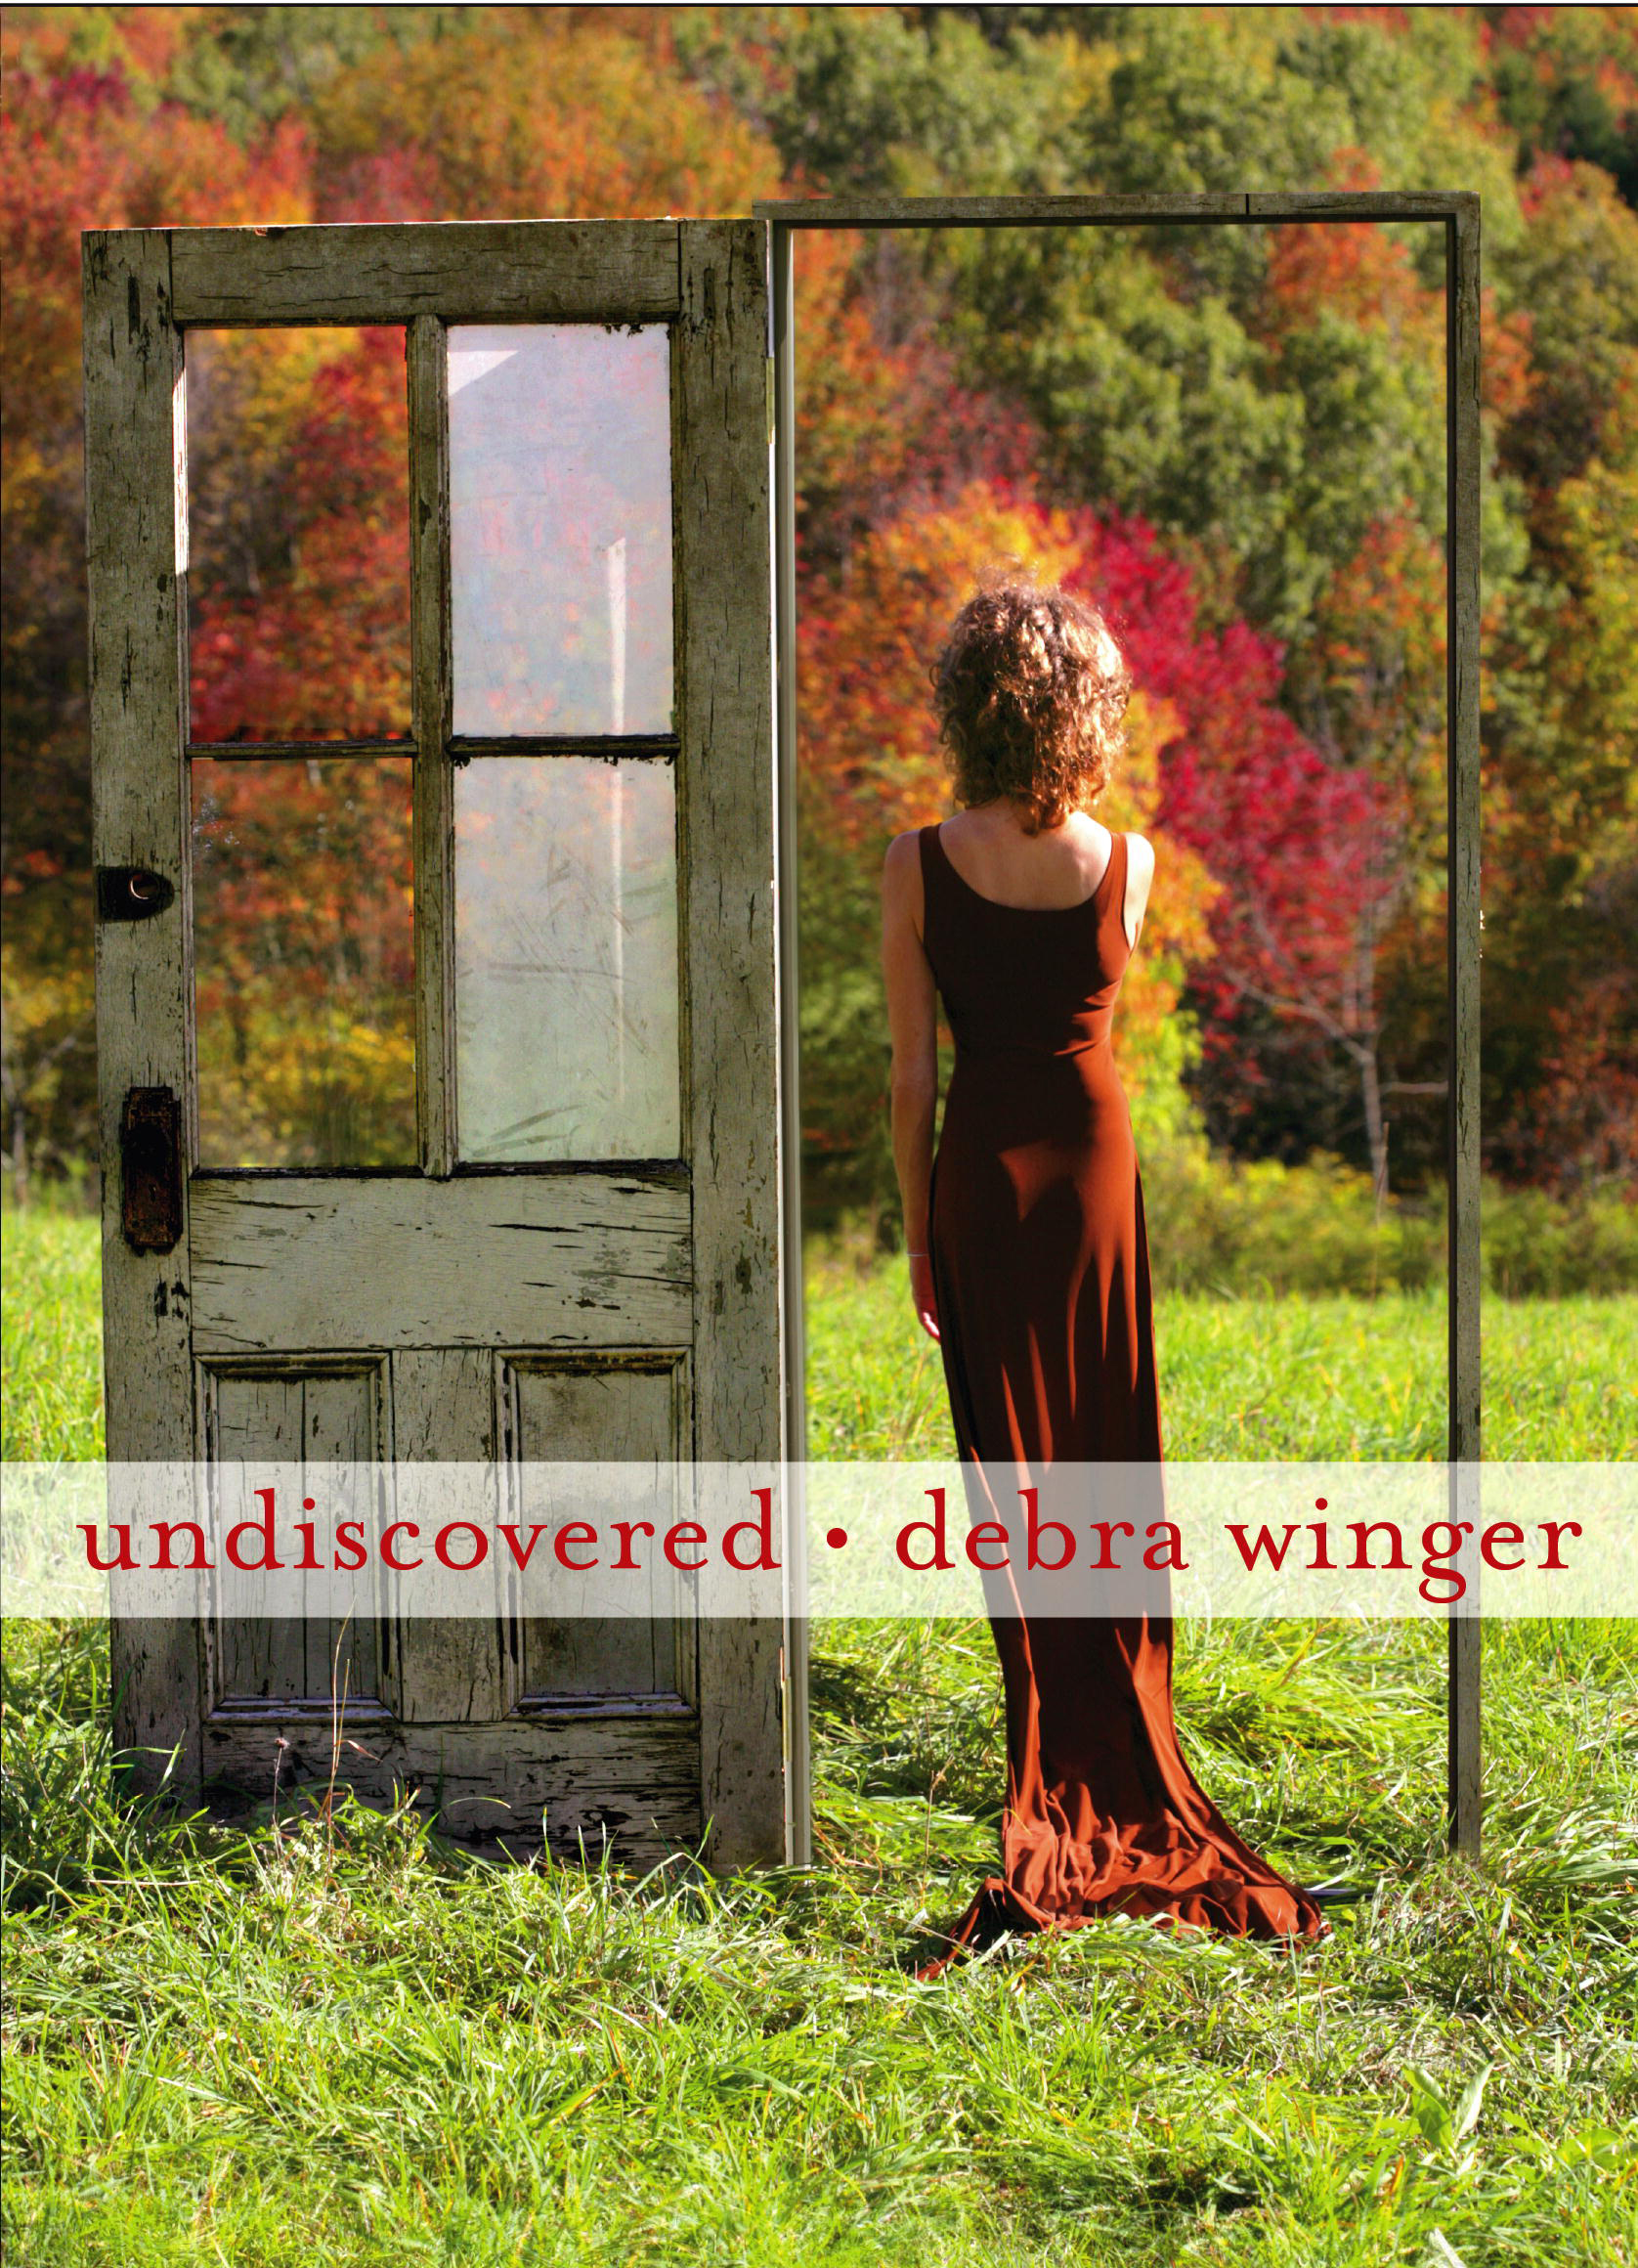 Undiscovered by Debra Winger